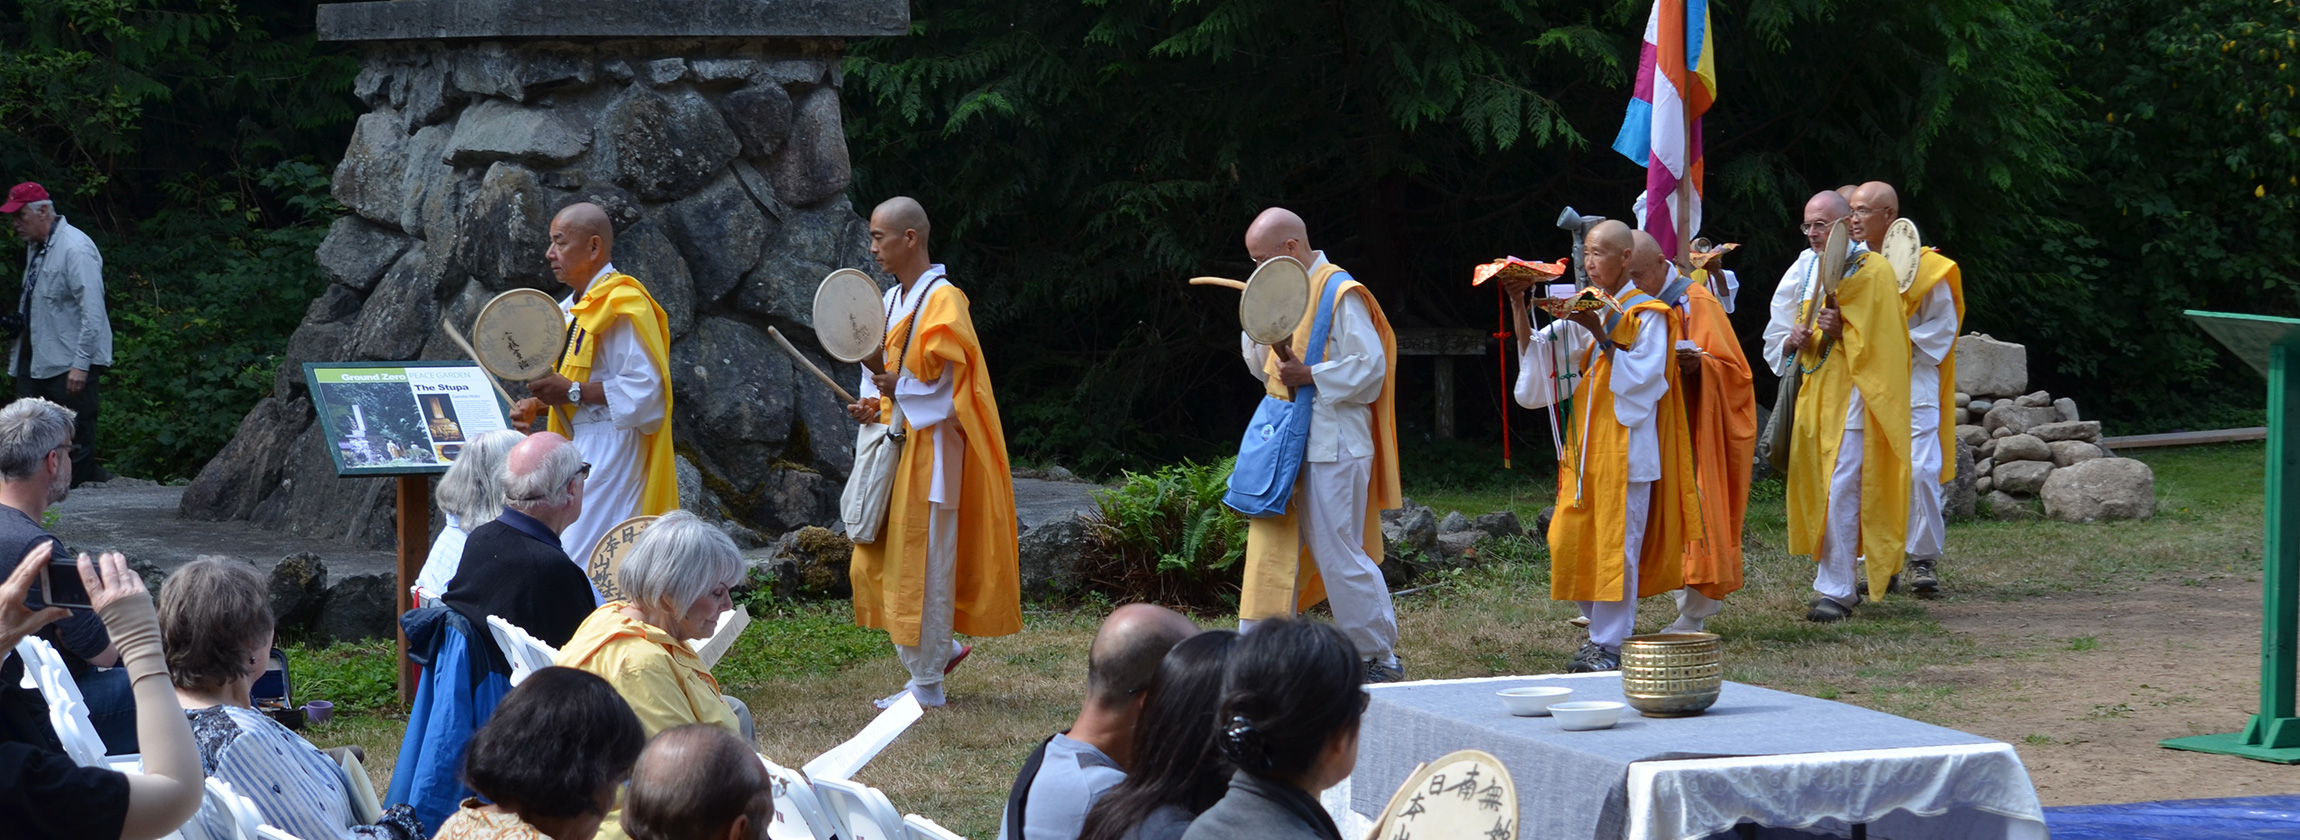 Rev. Senji Kanaeda leads on procession Nipponzan Myohoji peace monks, after a ceremony purifying ground for the planned Pacific Northwest Peace Pagoda. The pagoda will rise next to the Bangor Trident submarine missile base in Washington state, the largest concentration of deployed nuclear weapons in the United States